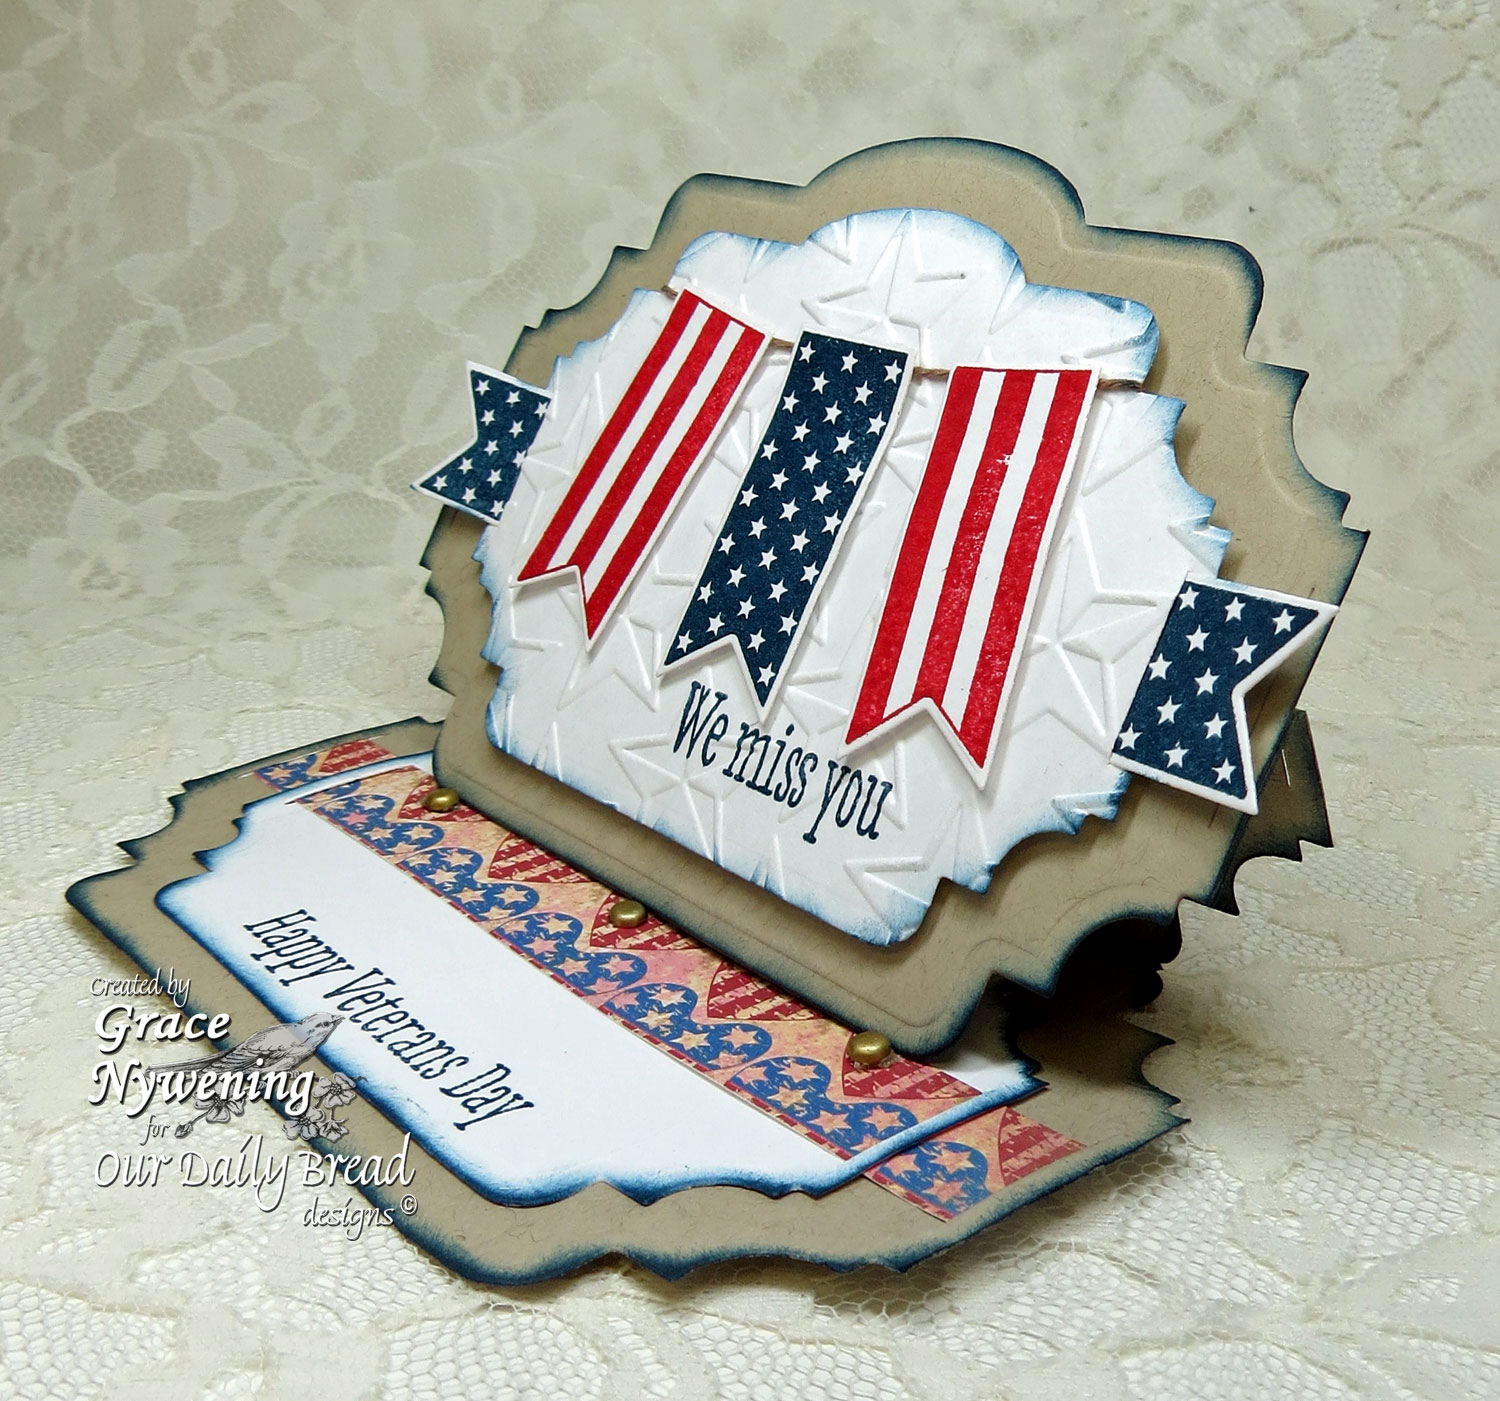 Stamps - Our Daily Bread Designs Patriotic Pennants, ODBD Custom Pennants Die, ODBD Heart and Soul Paper Collection